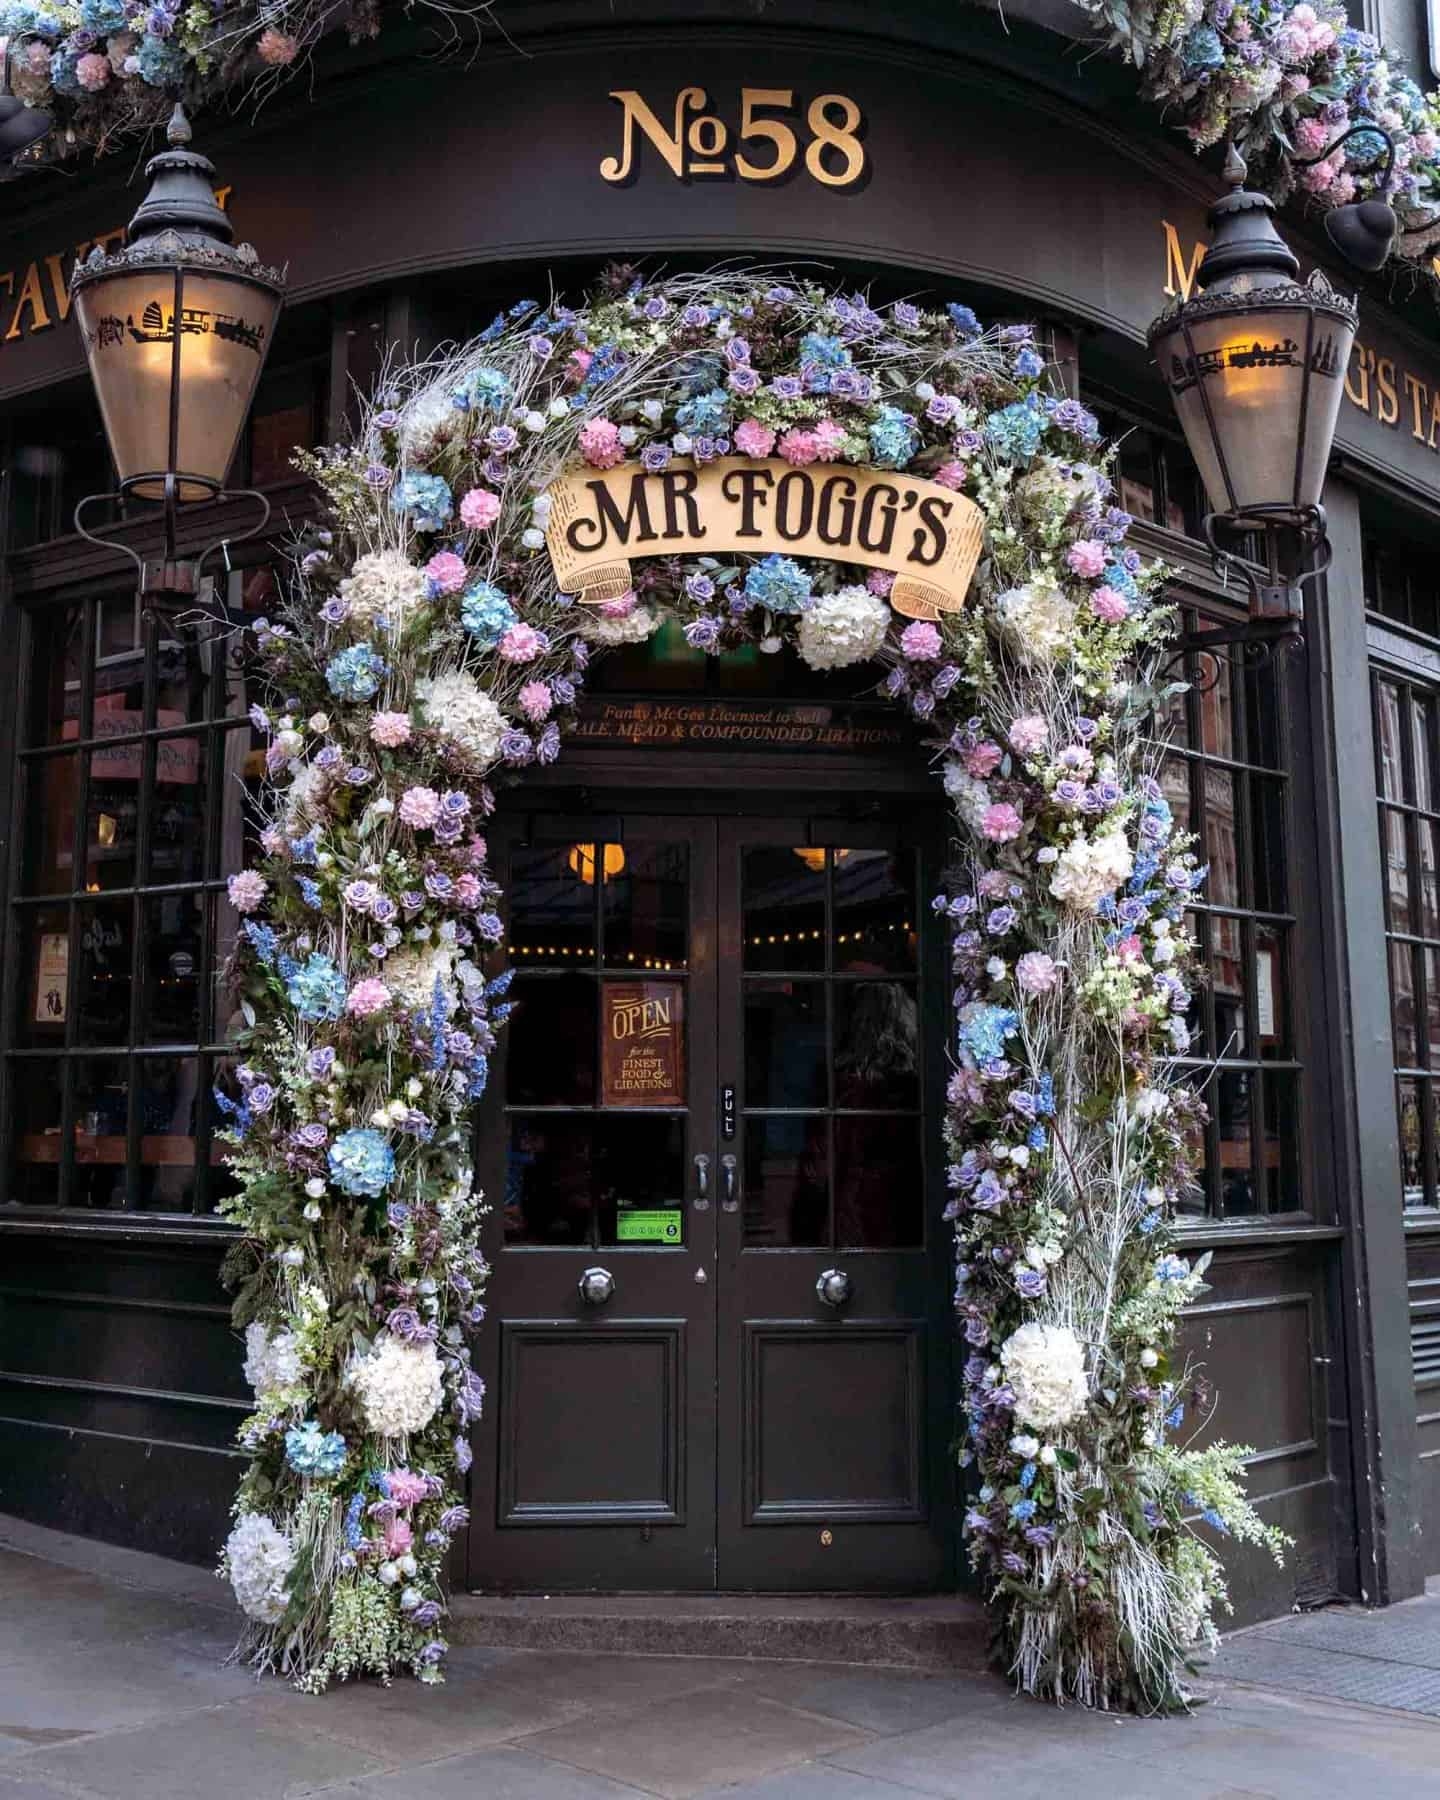 Mr Foggs House of Botanicals London exterior - one of the most instagrammable places in London